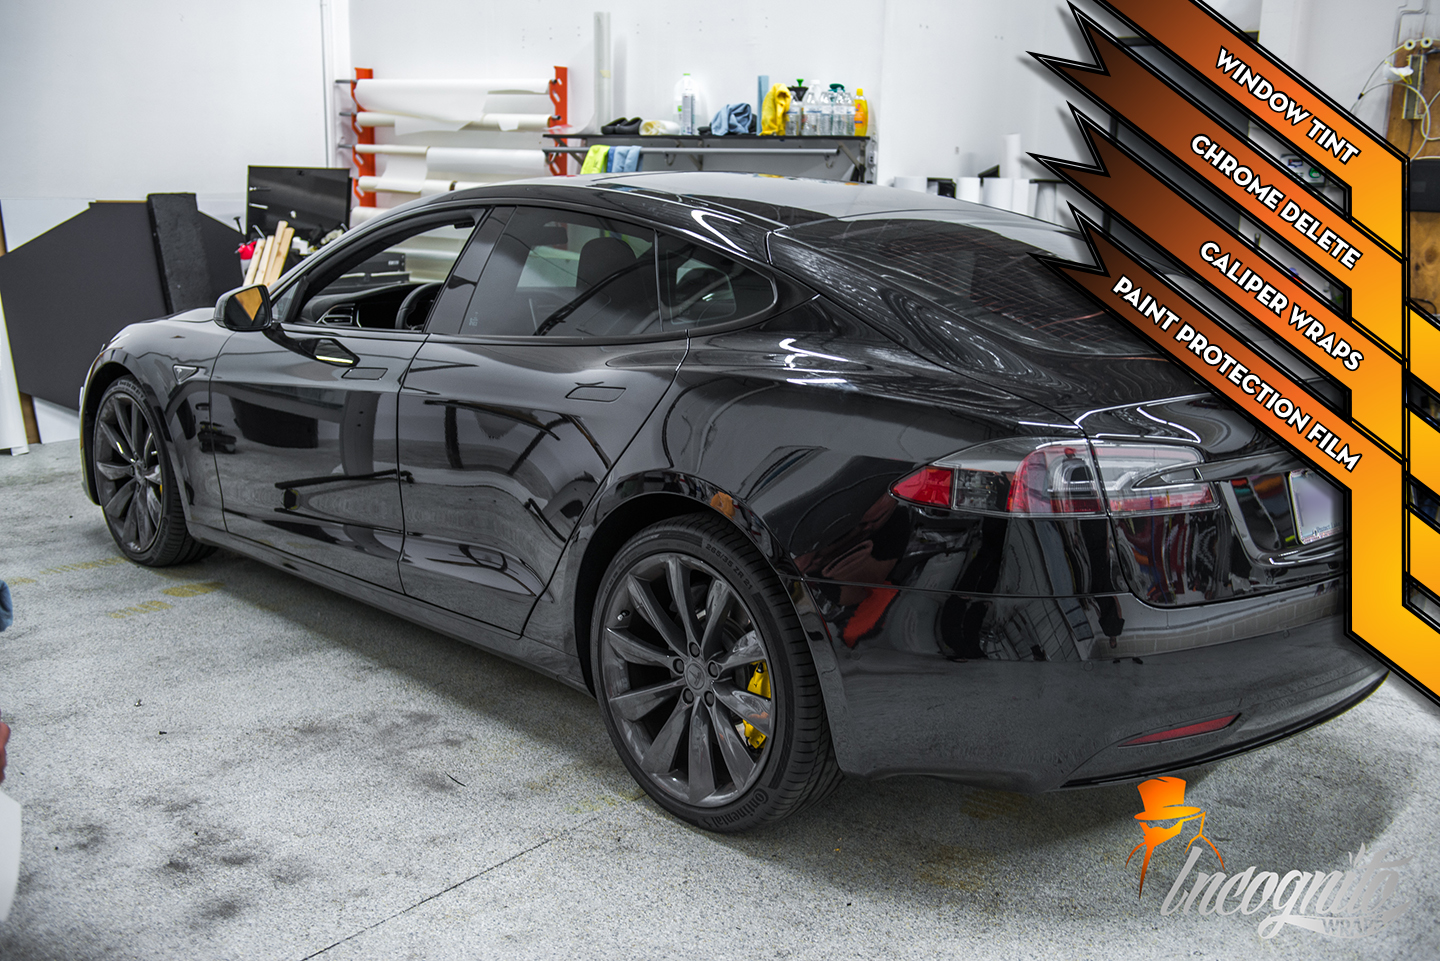 Tesla Model S - Chrome Delete, Calipers, Window Tint, and Paint Protection